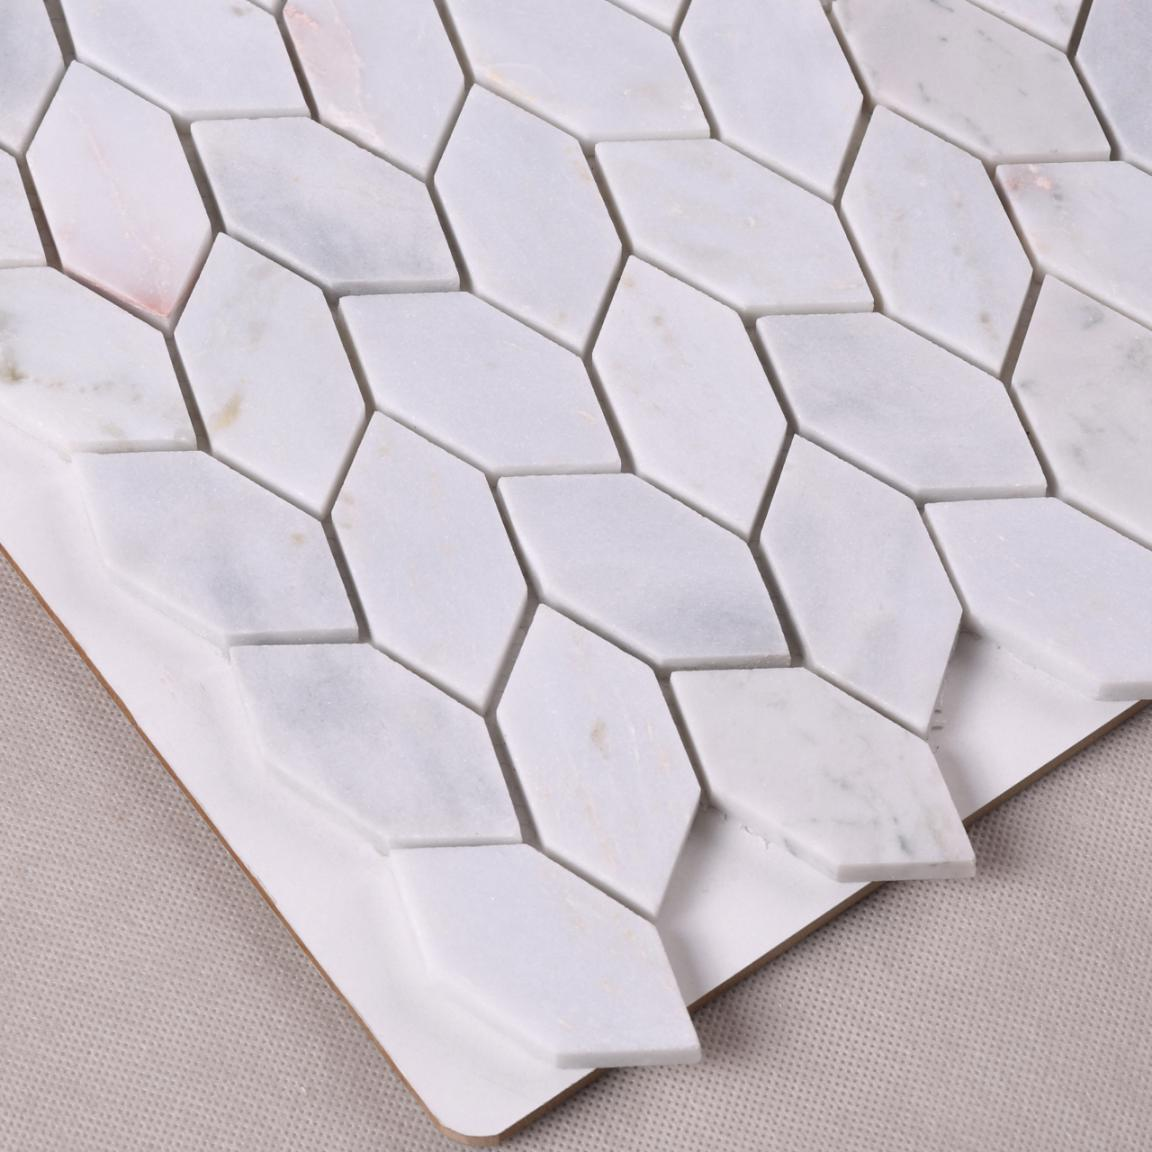 HSC97 Best Price Leaf Shape Natural Stone Decorative Mosaic